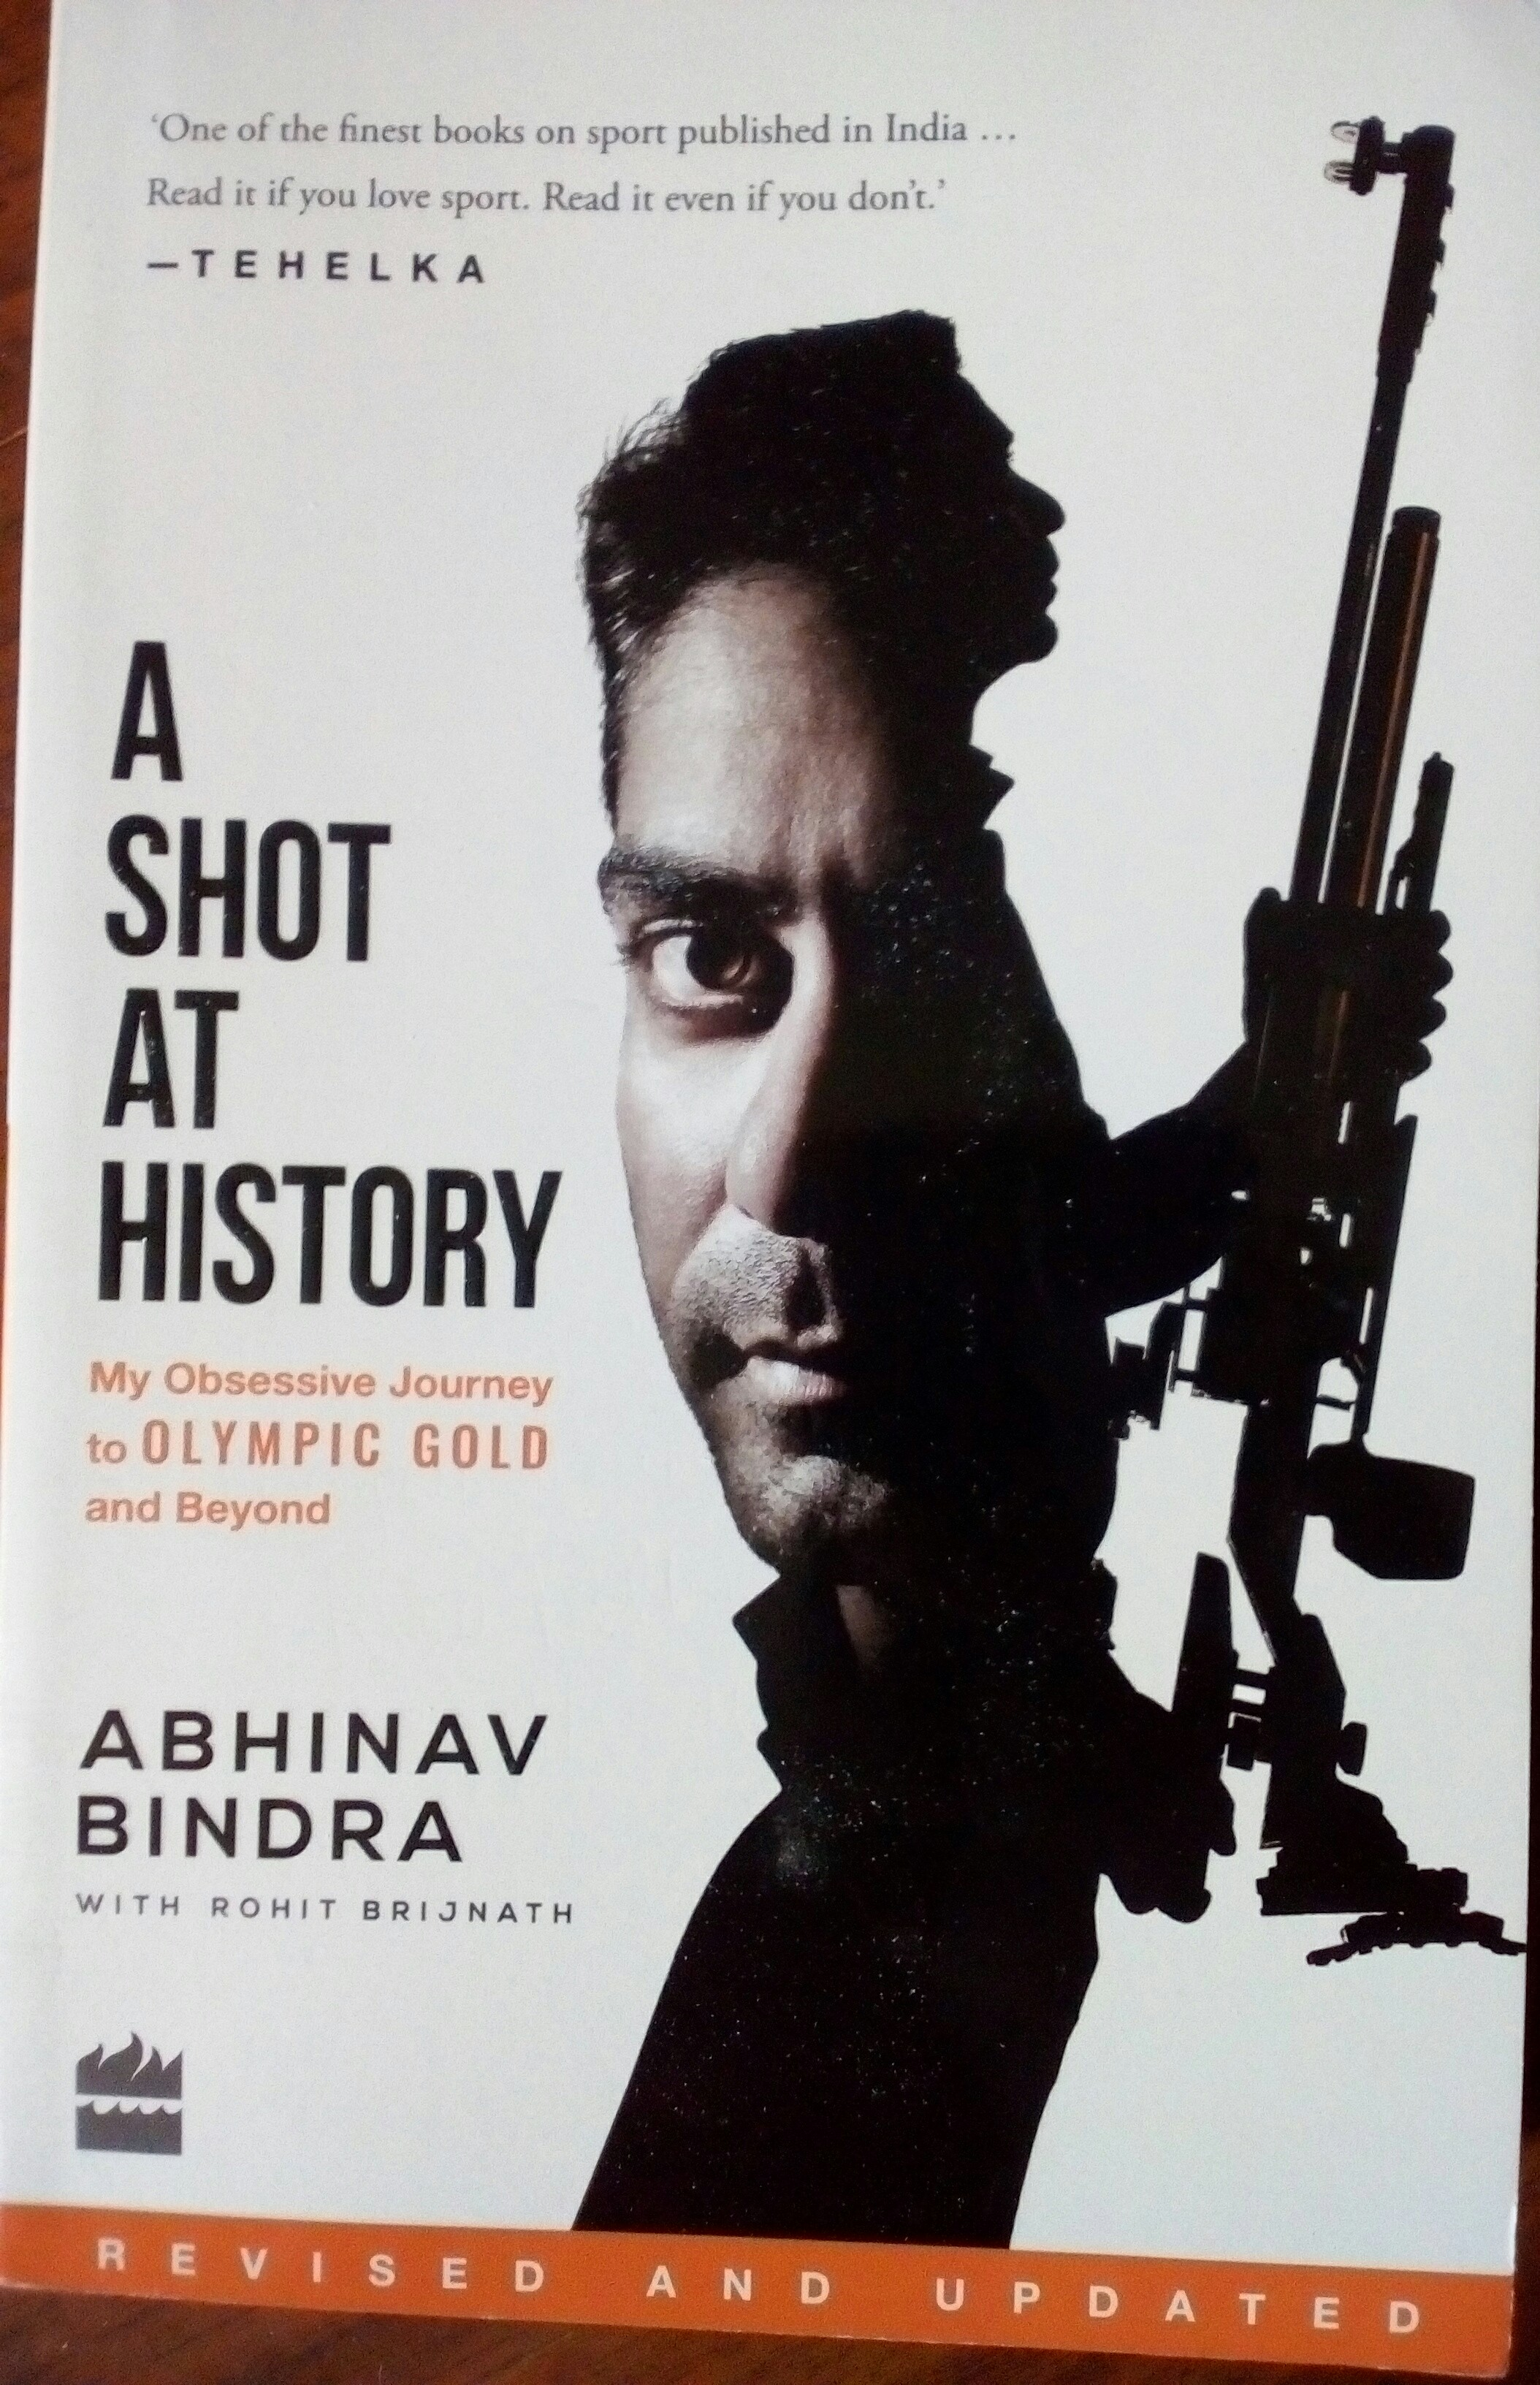 Honesty, courage thread binds updated @Abhinav_Bindra book #AShotAtHistory